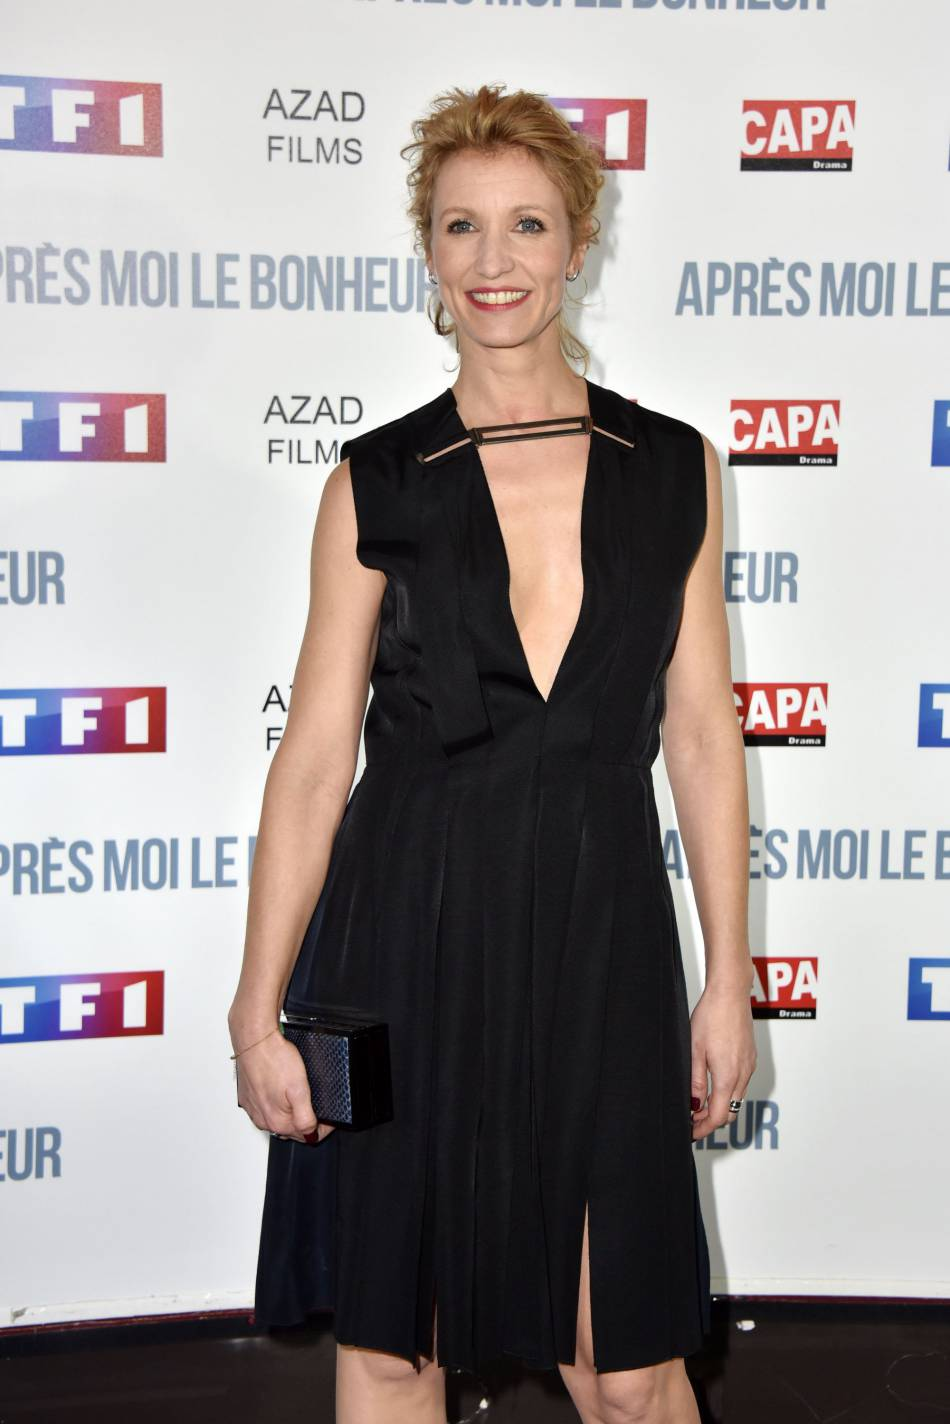 Alexandra lamy rayonnante sur le tapis rouge elle ose for Alexandra lami